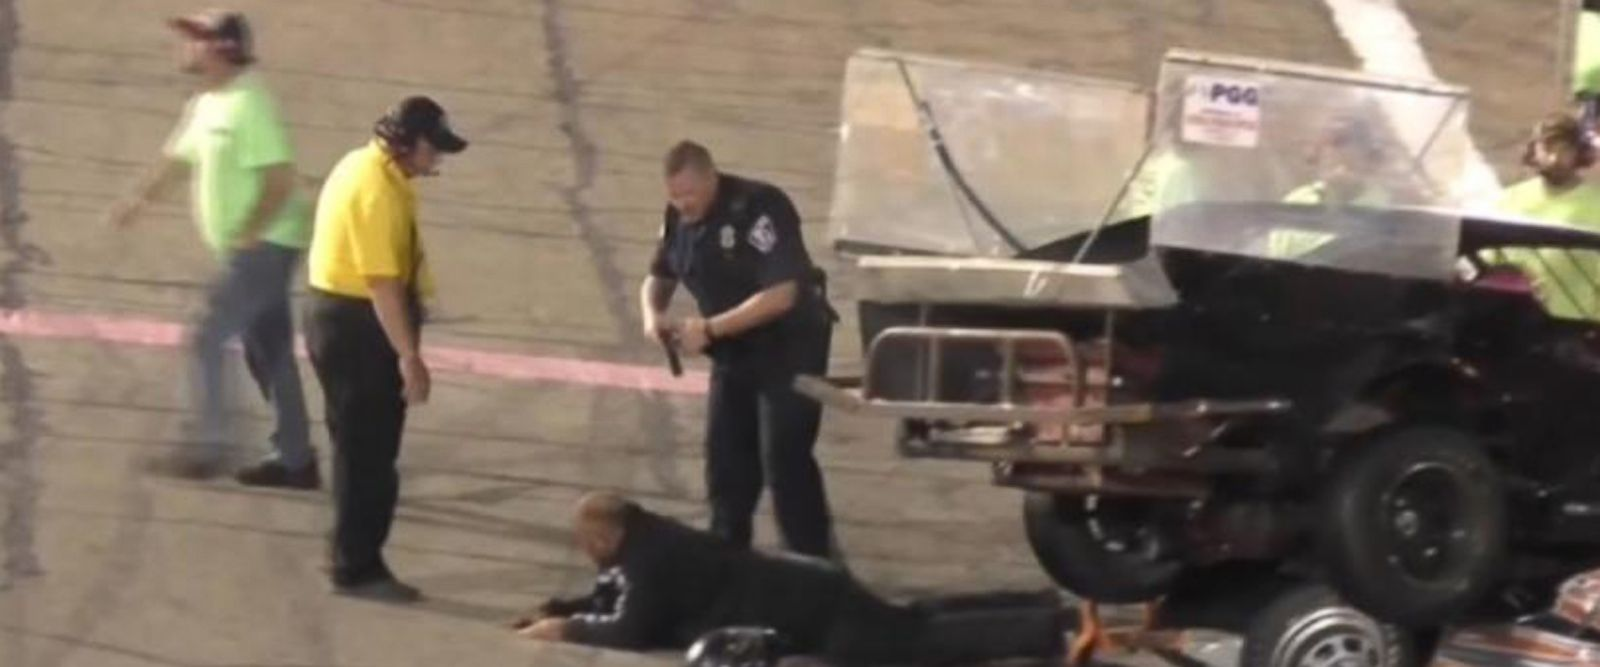 VIDEO: Crash leads to fight, stun gun, arrests on Indiana racetrack